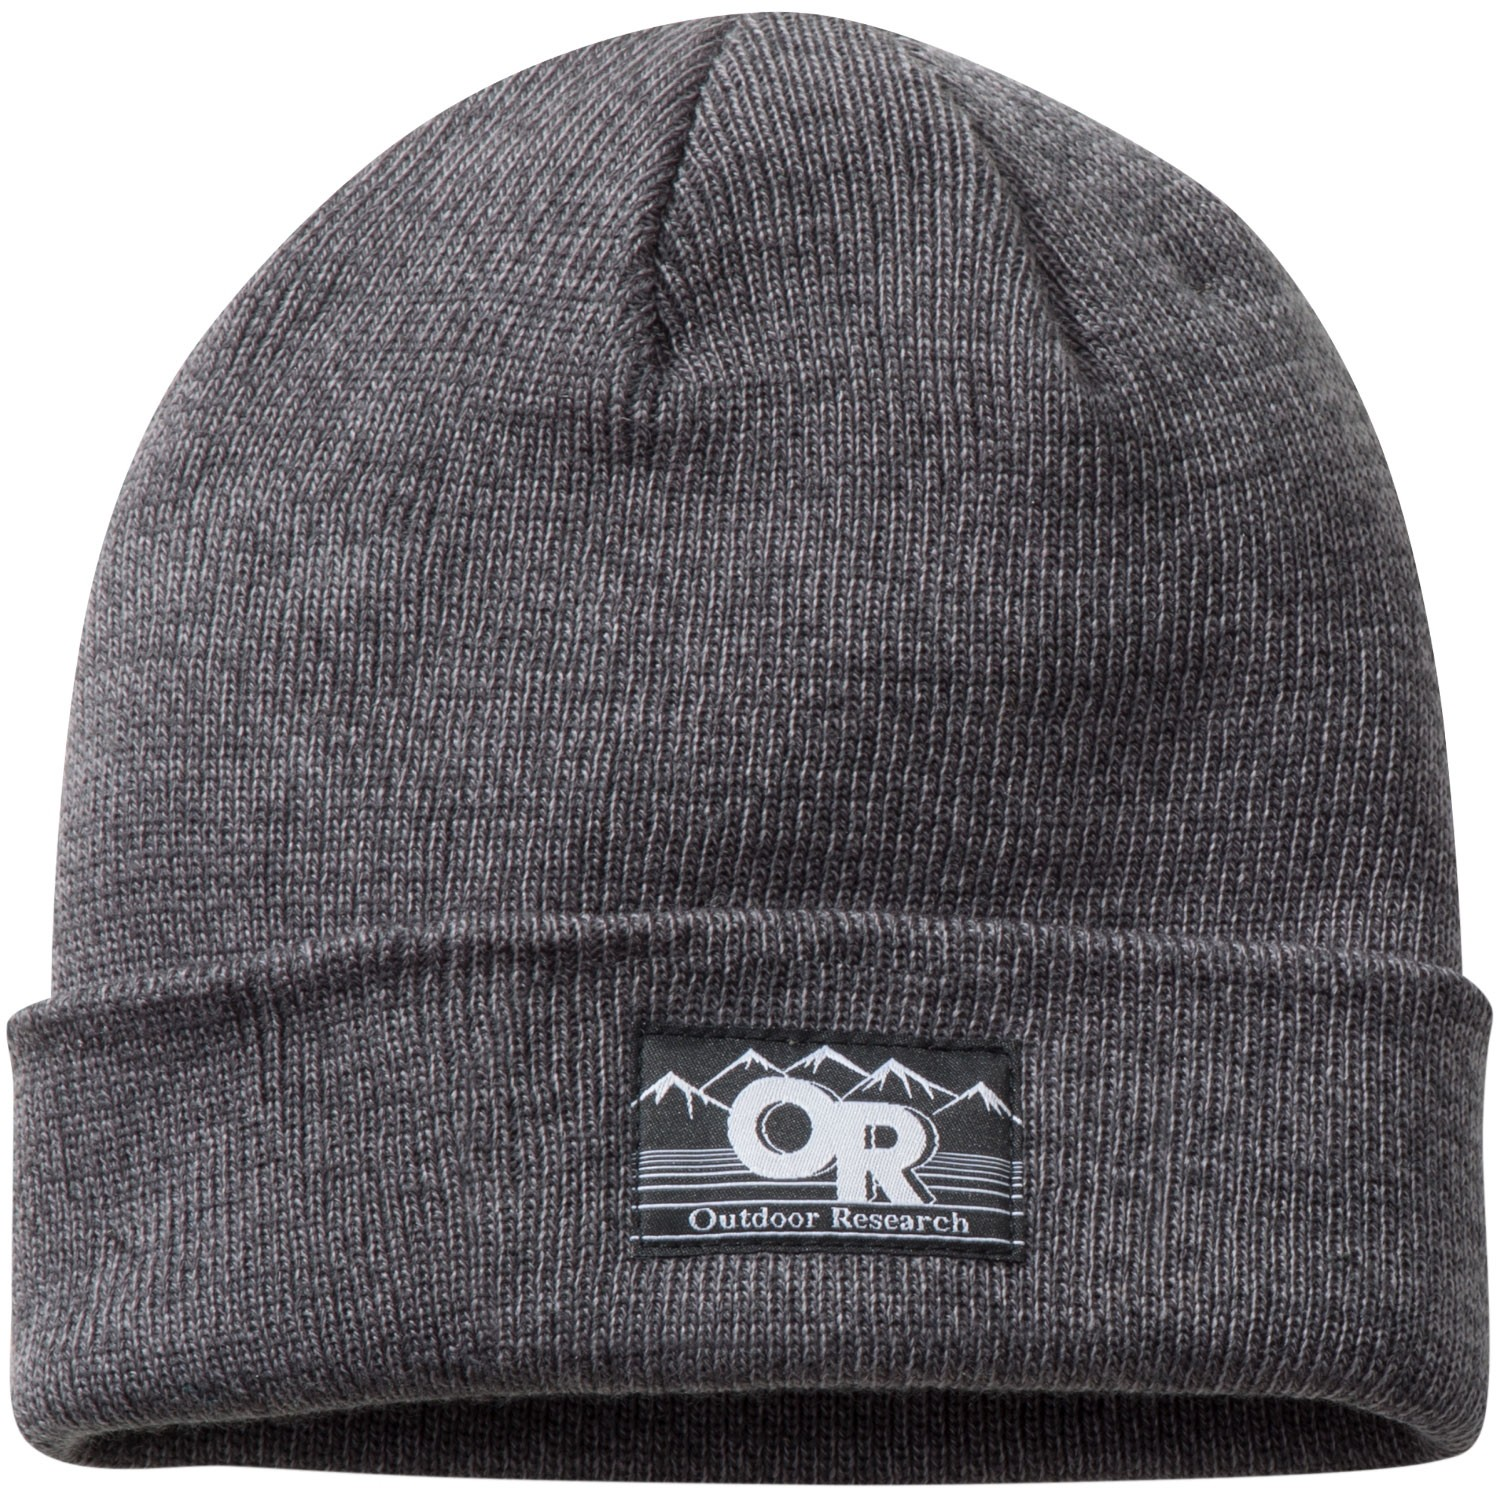 Outdoor Research Juneau Beanie - Charcoal Heather